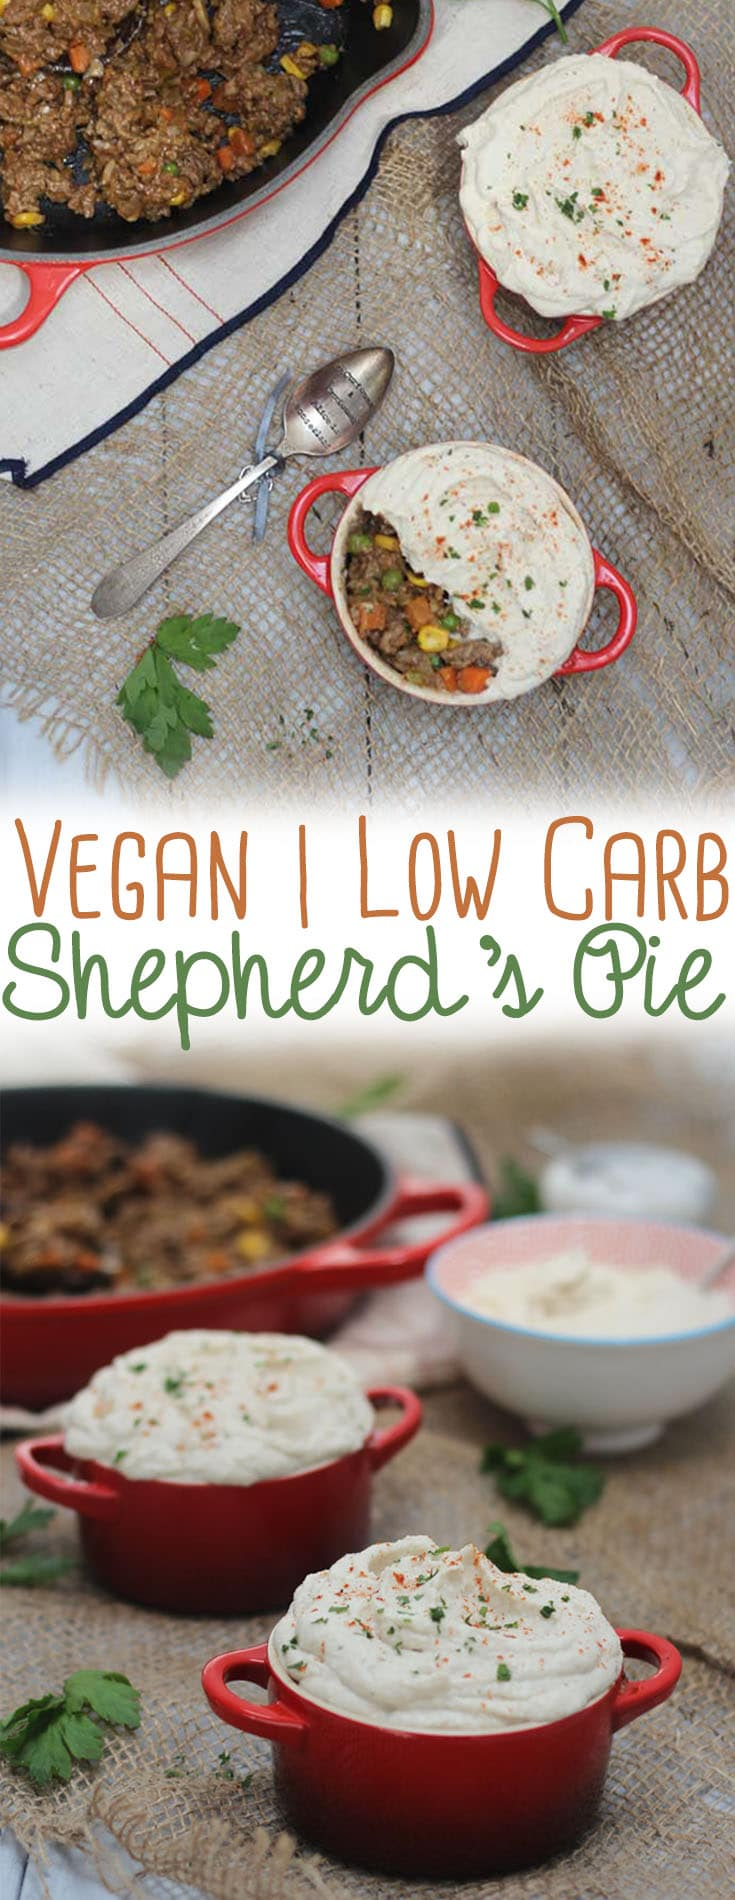 This vegan low carb Shepherd's Pie is gluten free and keto friendly and totally will bring you back to your childhood with this nostalgic meal!